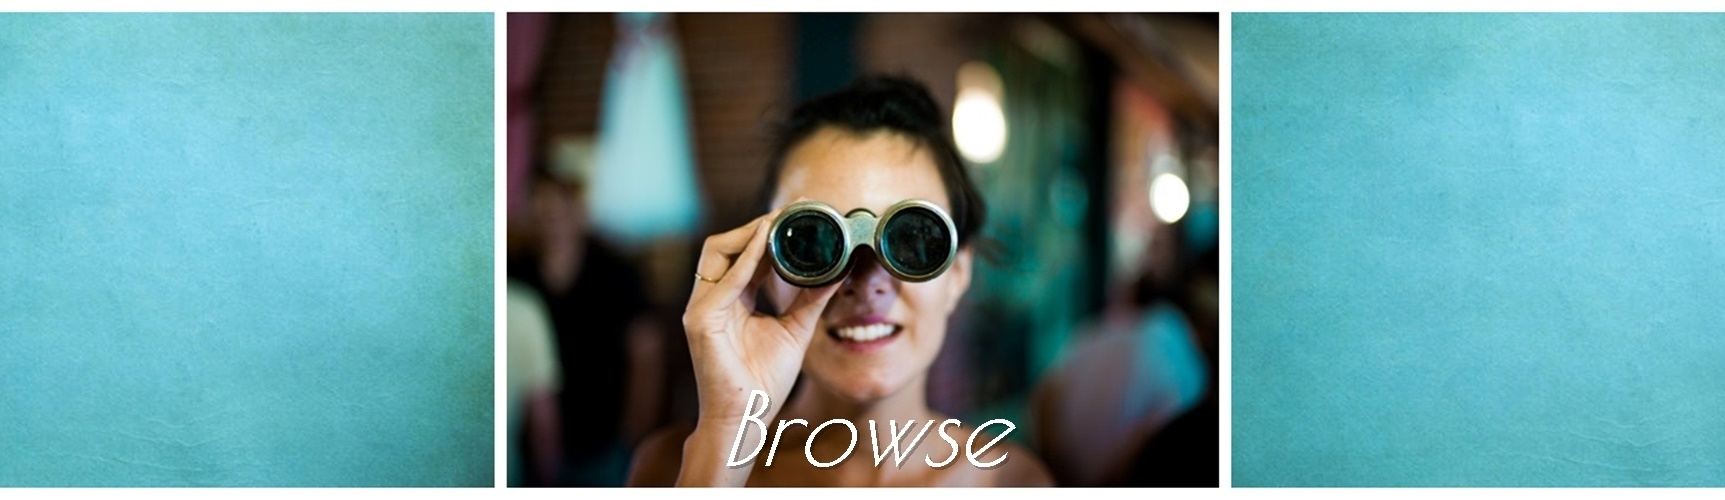 Browse 2